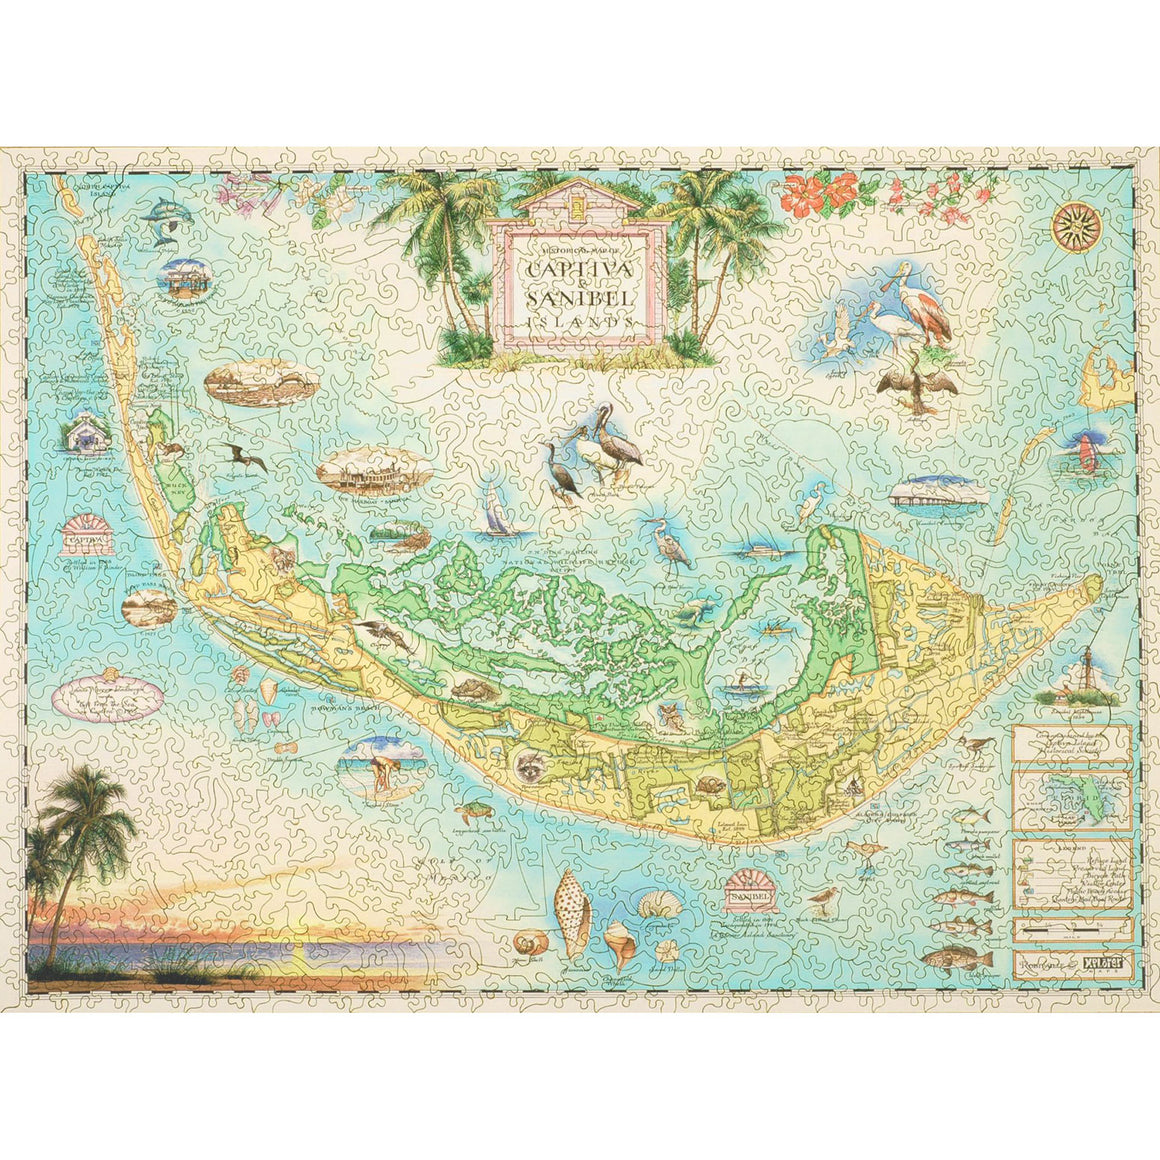 Sanibel Captiva Islands wooden puzzle